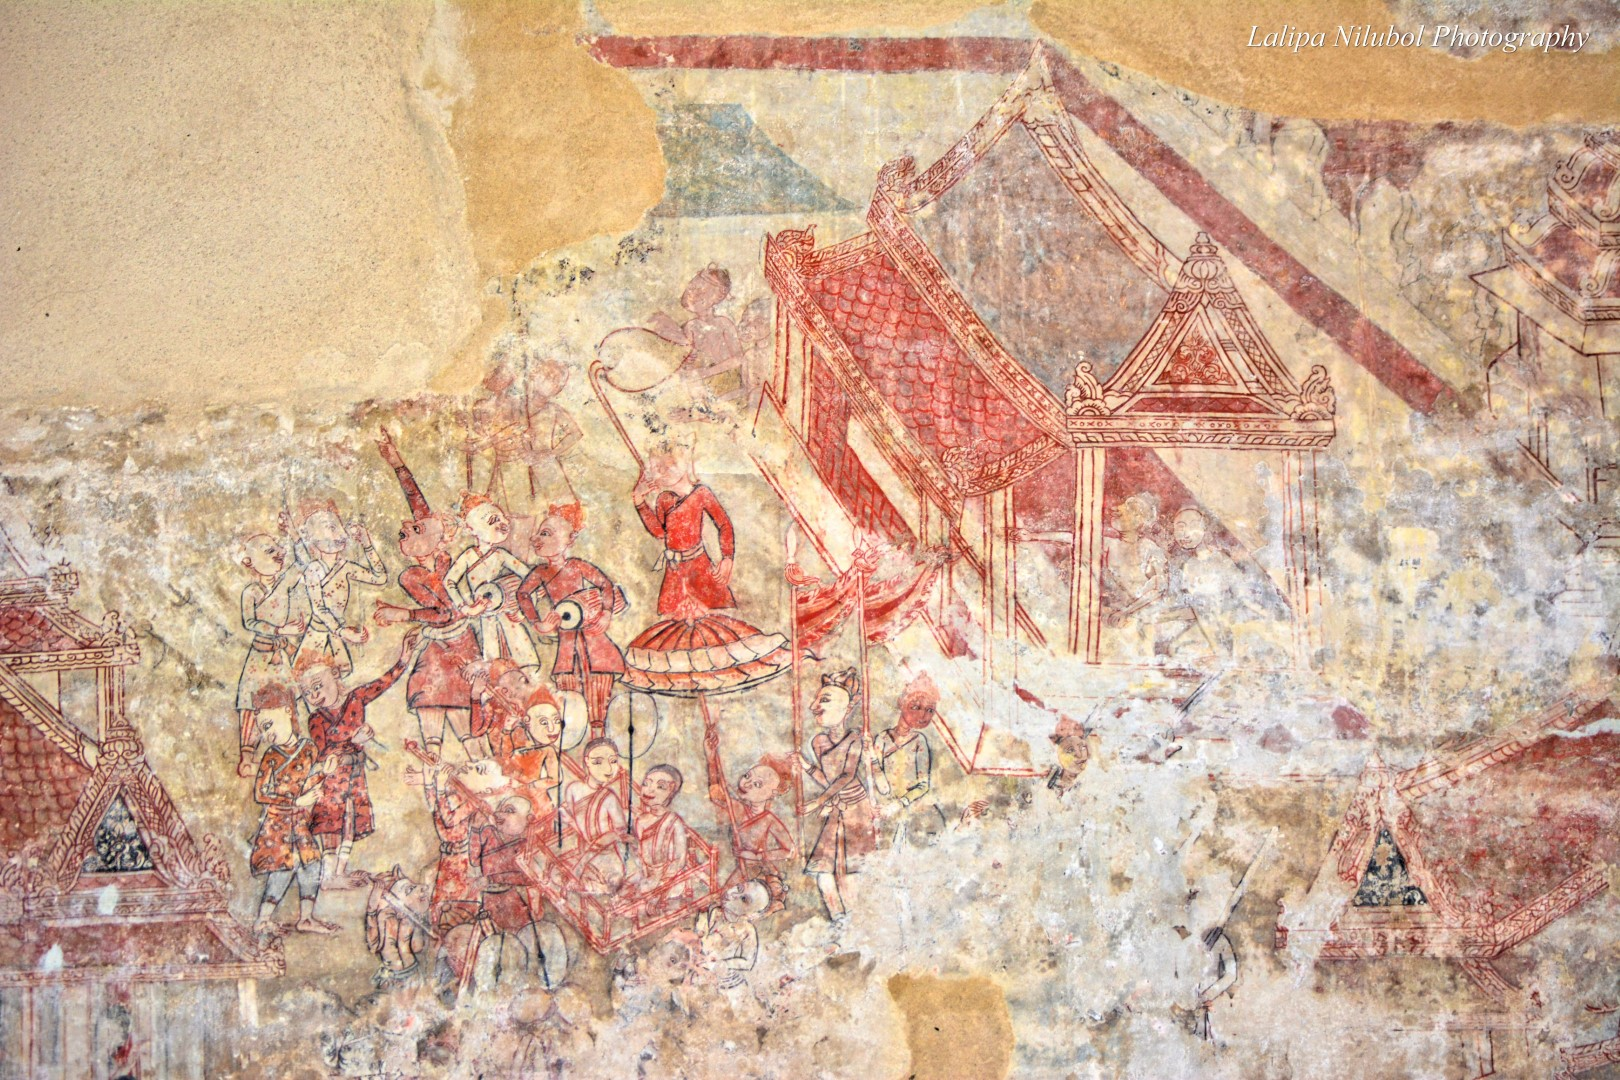 A mural painting exhibited in the old chapel of Wat Kwian Hak (Chanthaburi).